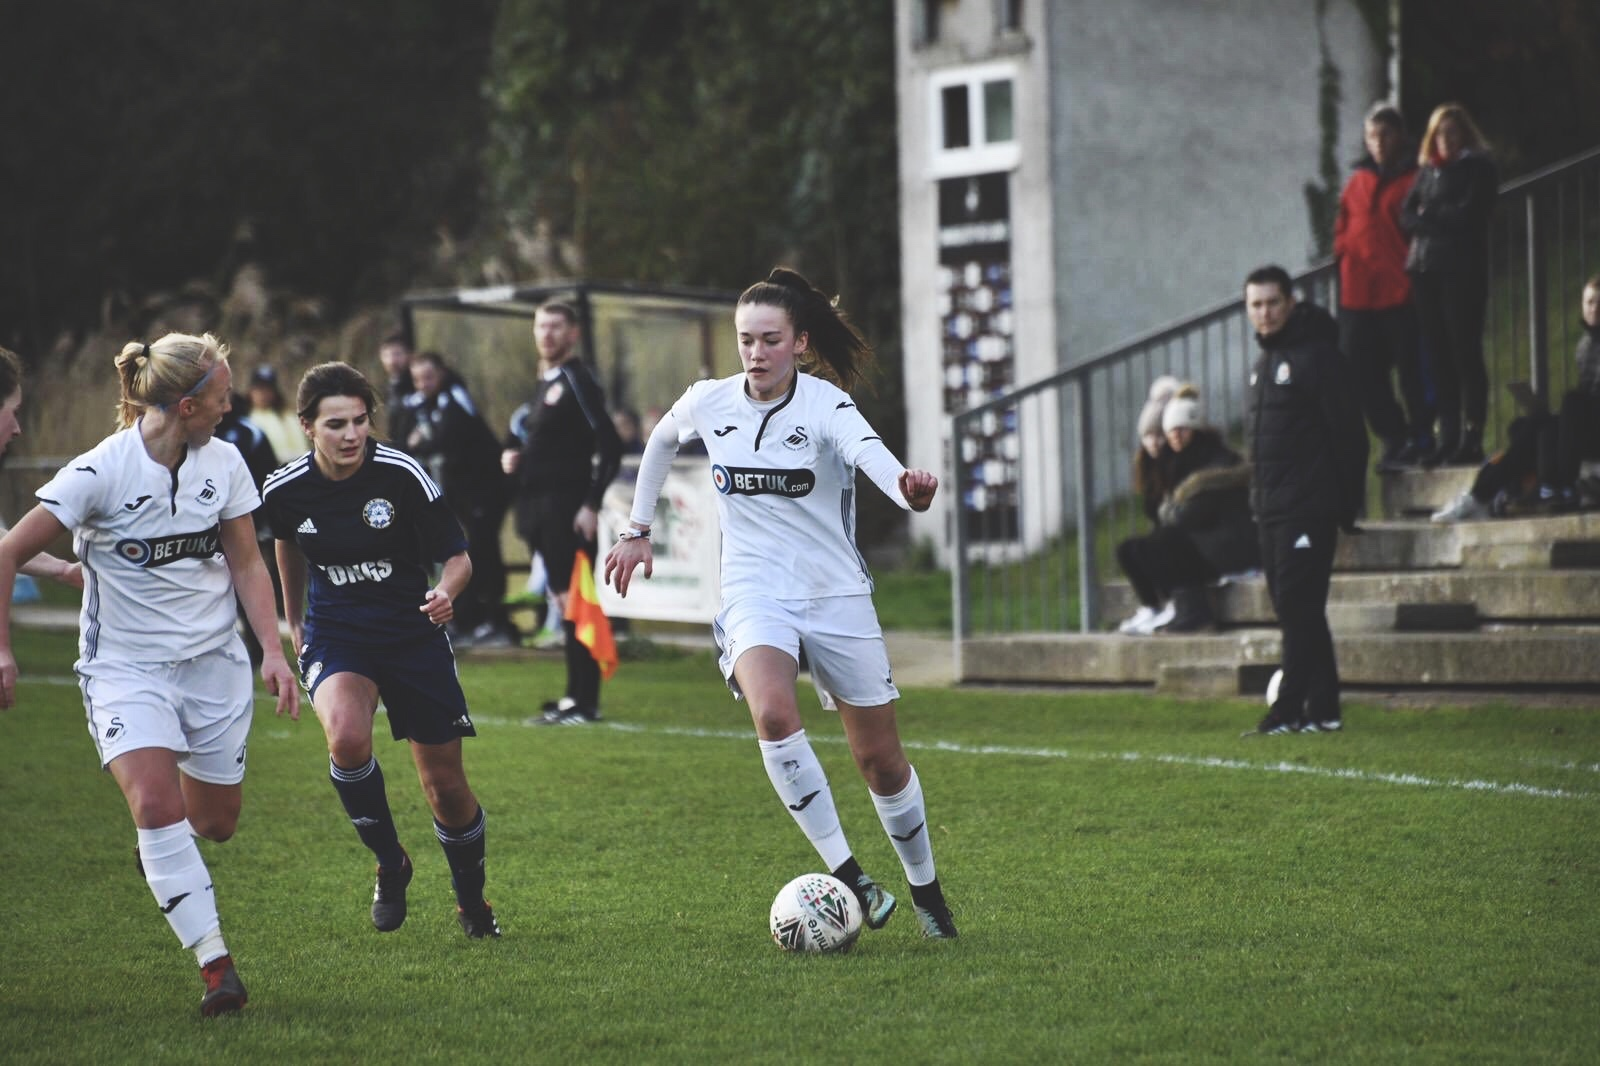 Nieve Jenkins in action for Swansea City Ladies.